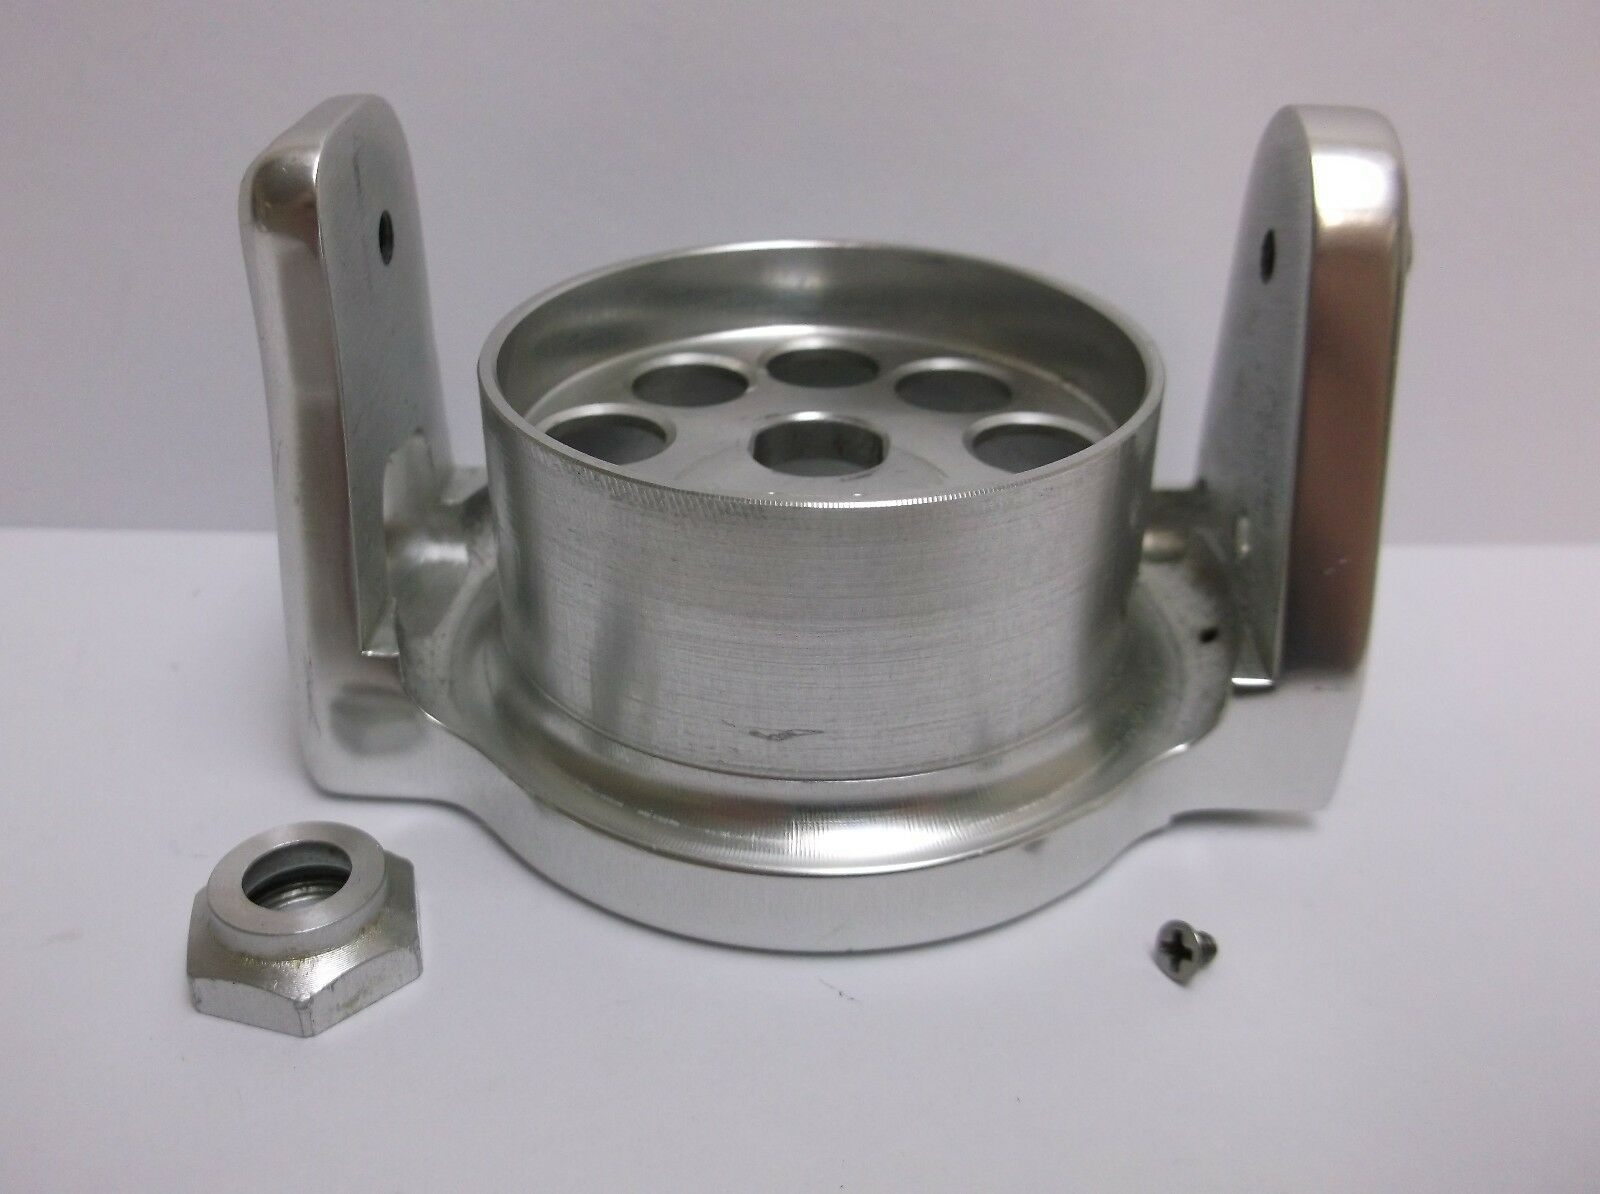 USED ACCURATE SPINNING REEL PART - SR-12 Twinspin Twinspin Twinspin - Rotor Assembly 83784e